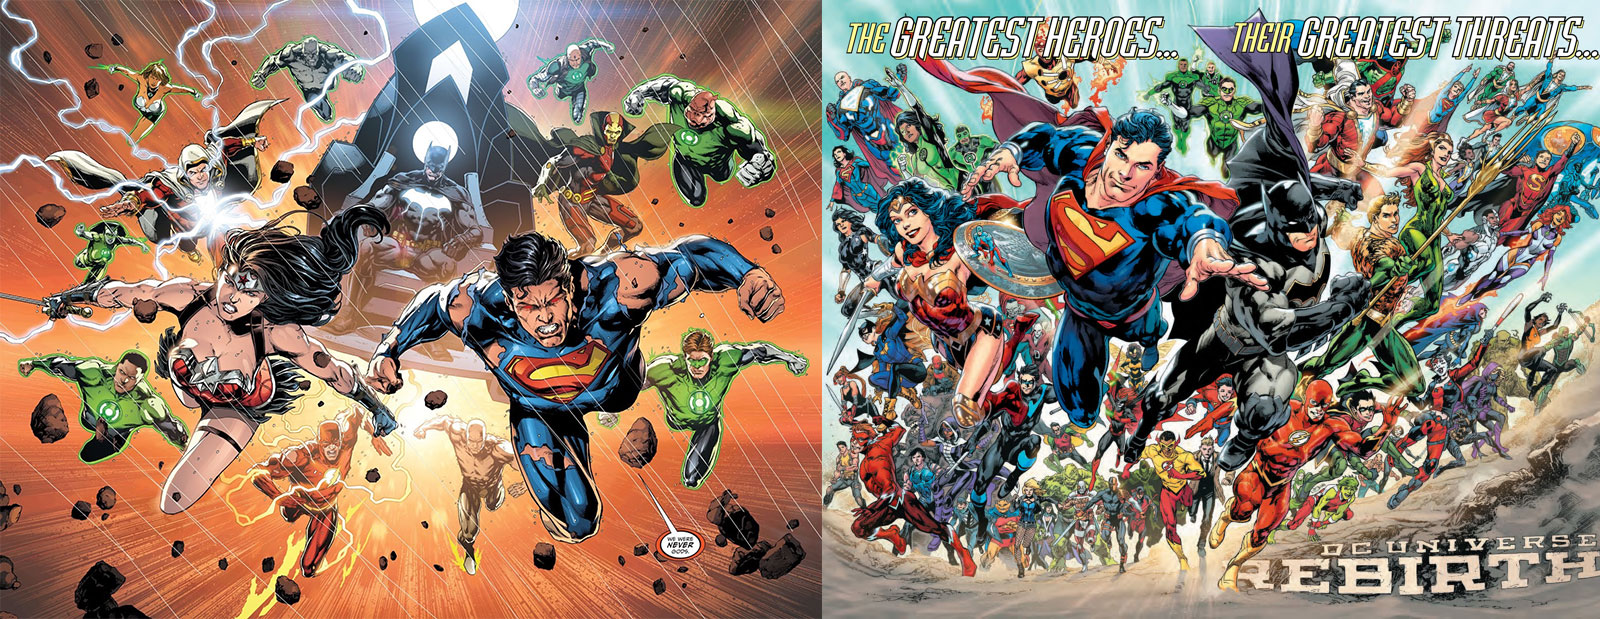 Even the splash pages from  Justice League  #50 (left) and  DC Universe: Rebirth  #1 (right) signal a change in tone. Grizzled warriors on the left turn into smiling, hopeful heroes on the right. It's like a microcosm for the shift that's happening. And both of these books were published on the same day!